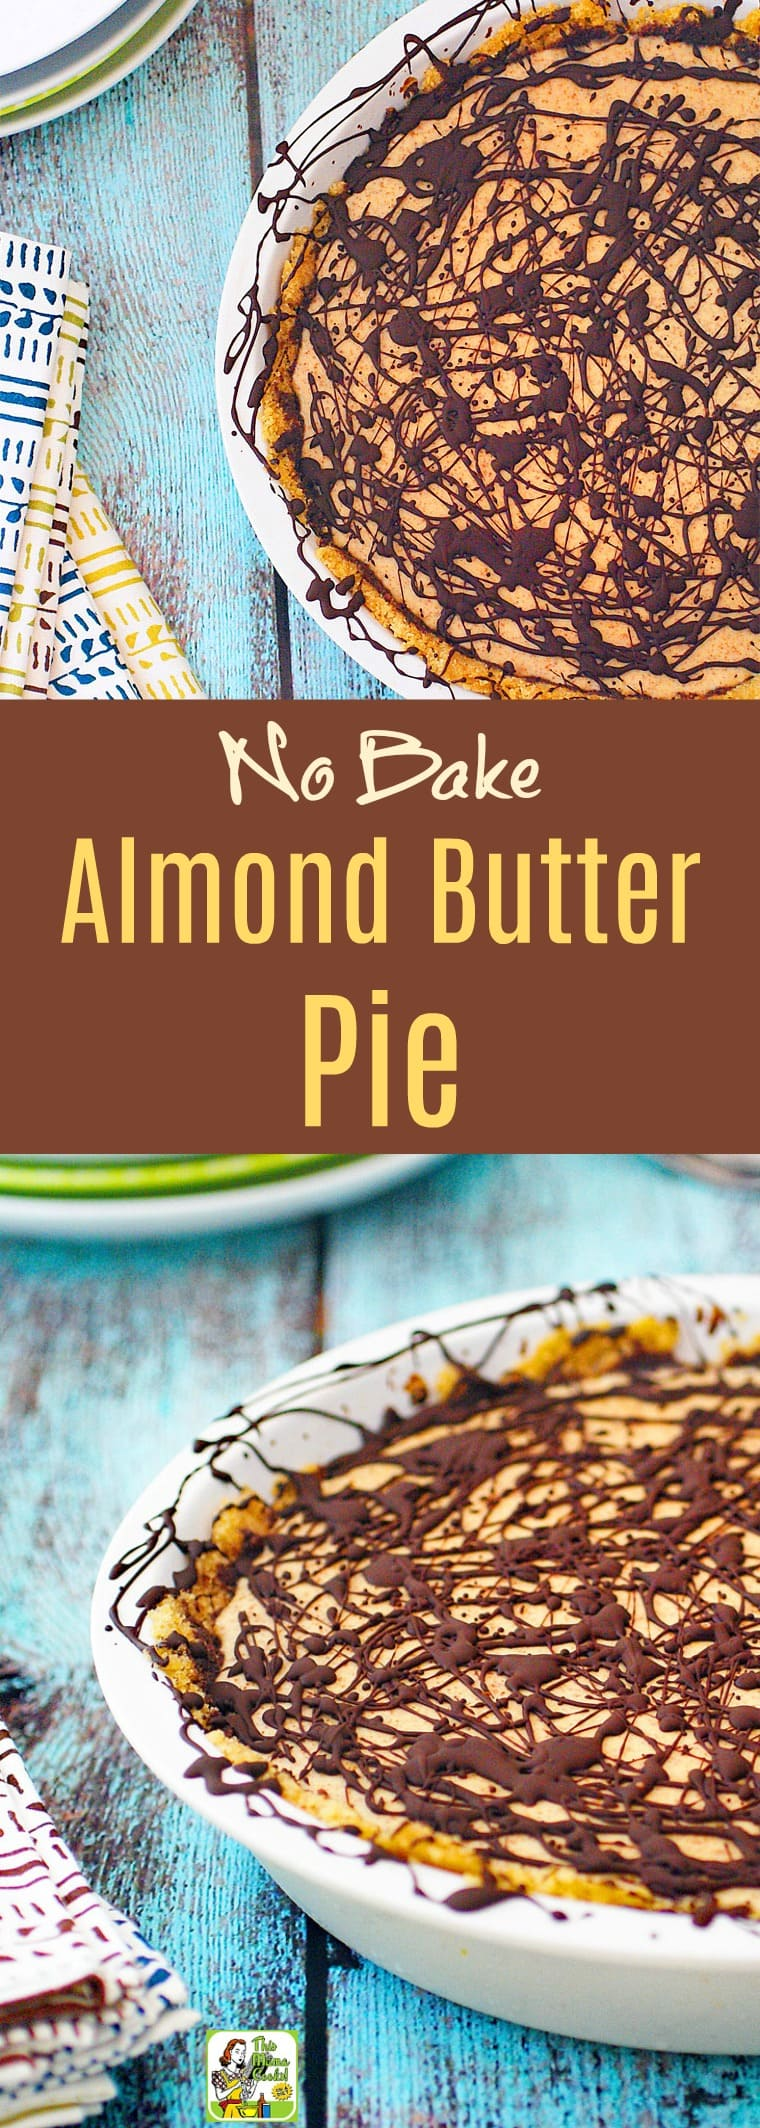 No Bake Almond Butter Pie Recipe